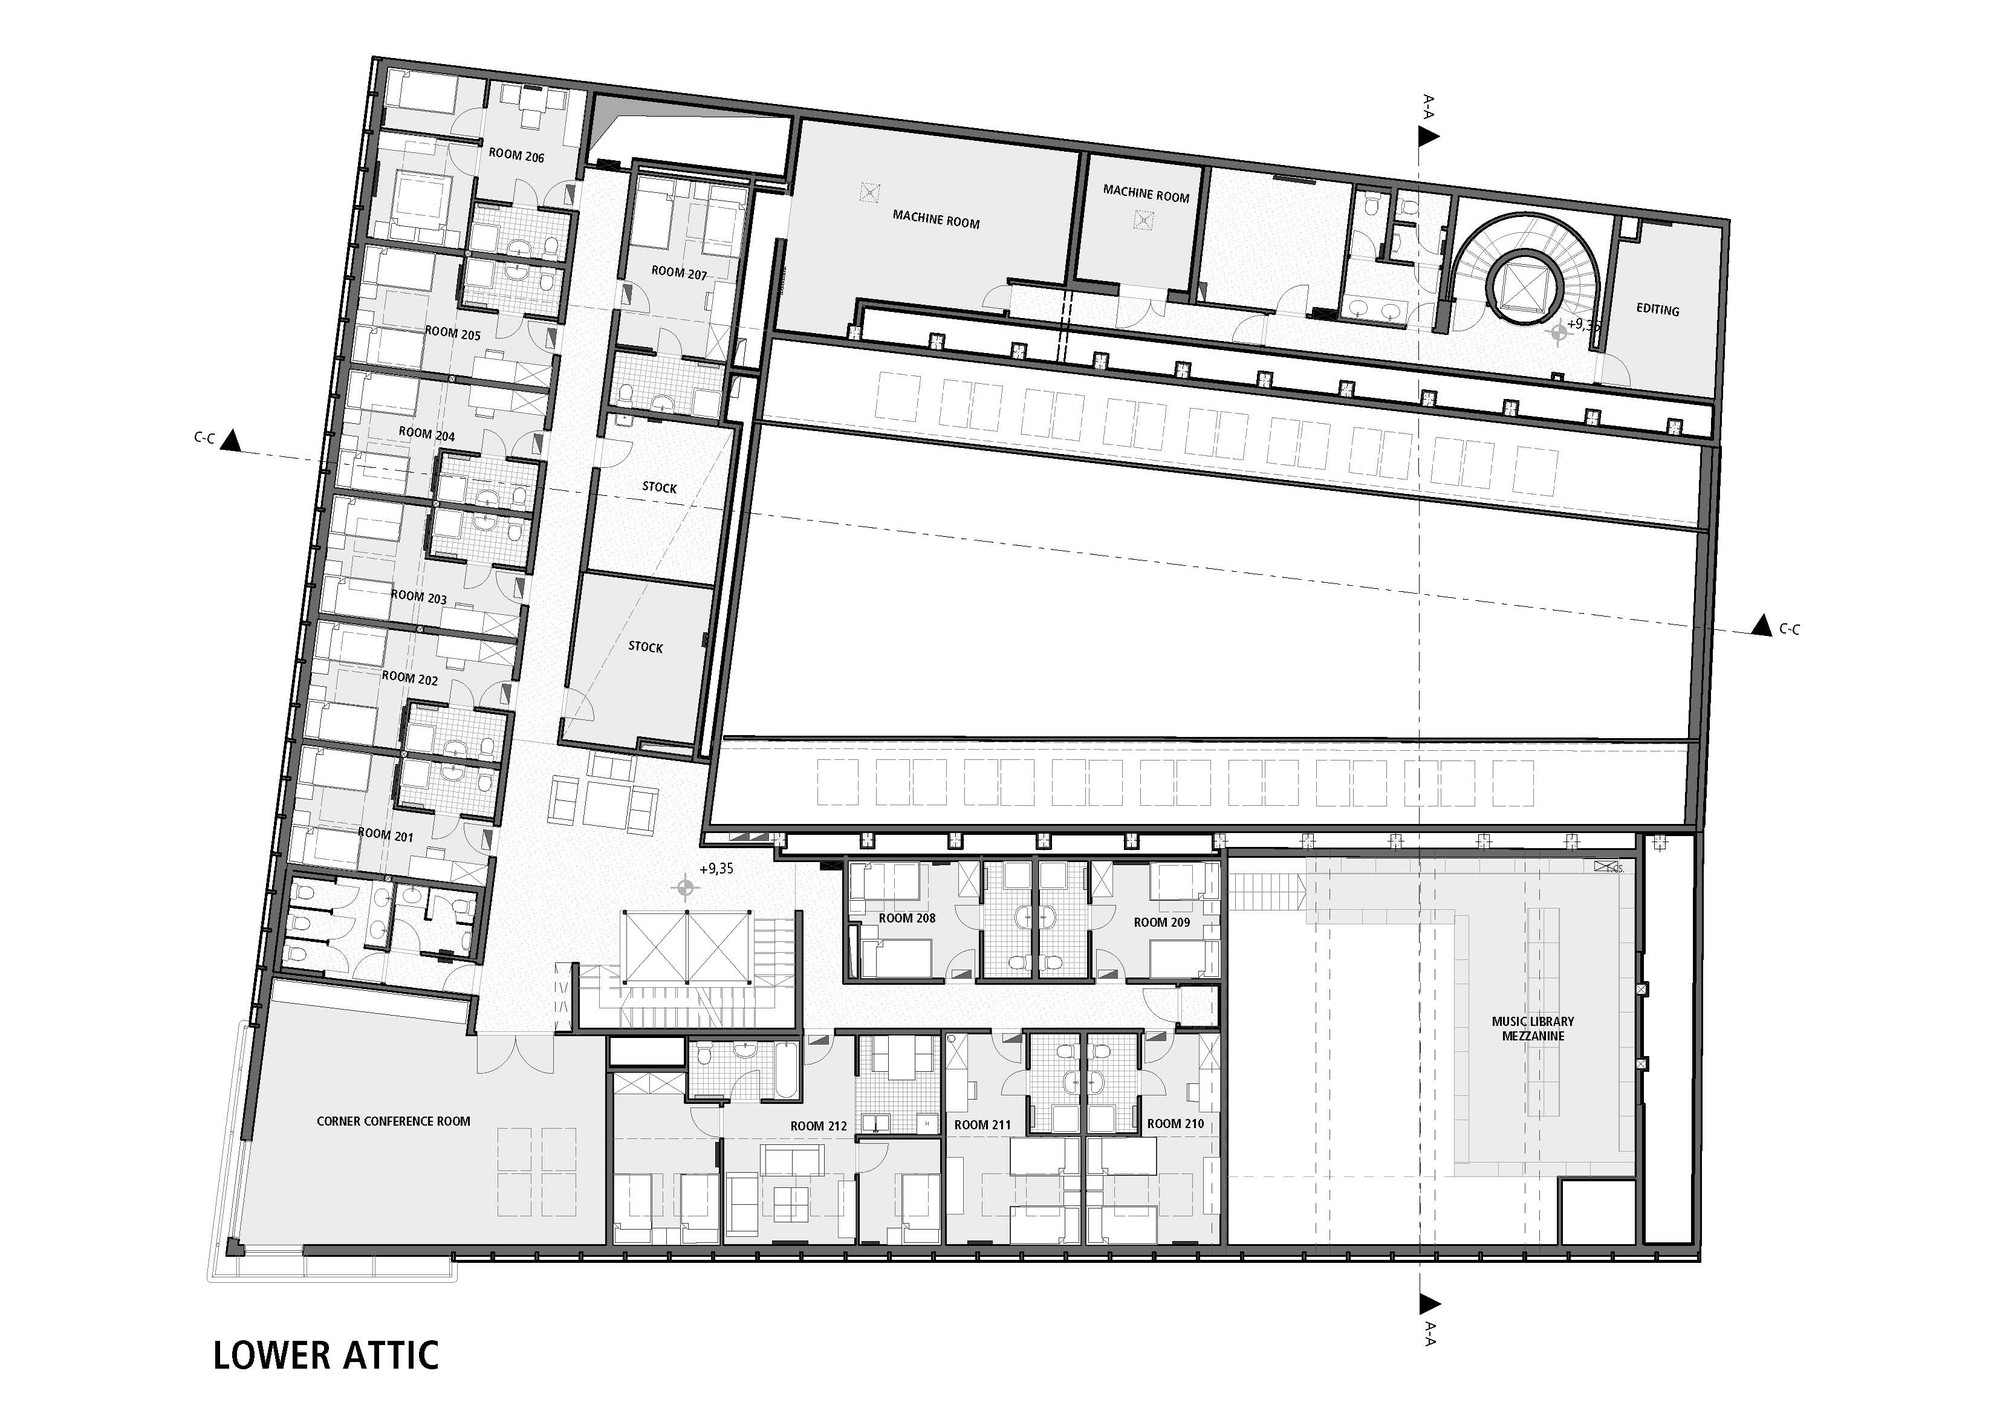 Gallery of budapest music center art1st design studio 30 for Recording studio floor plans architecture